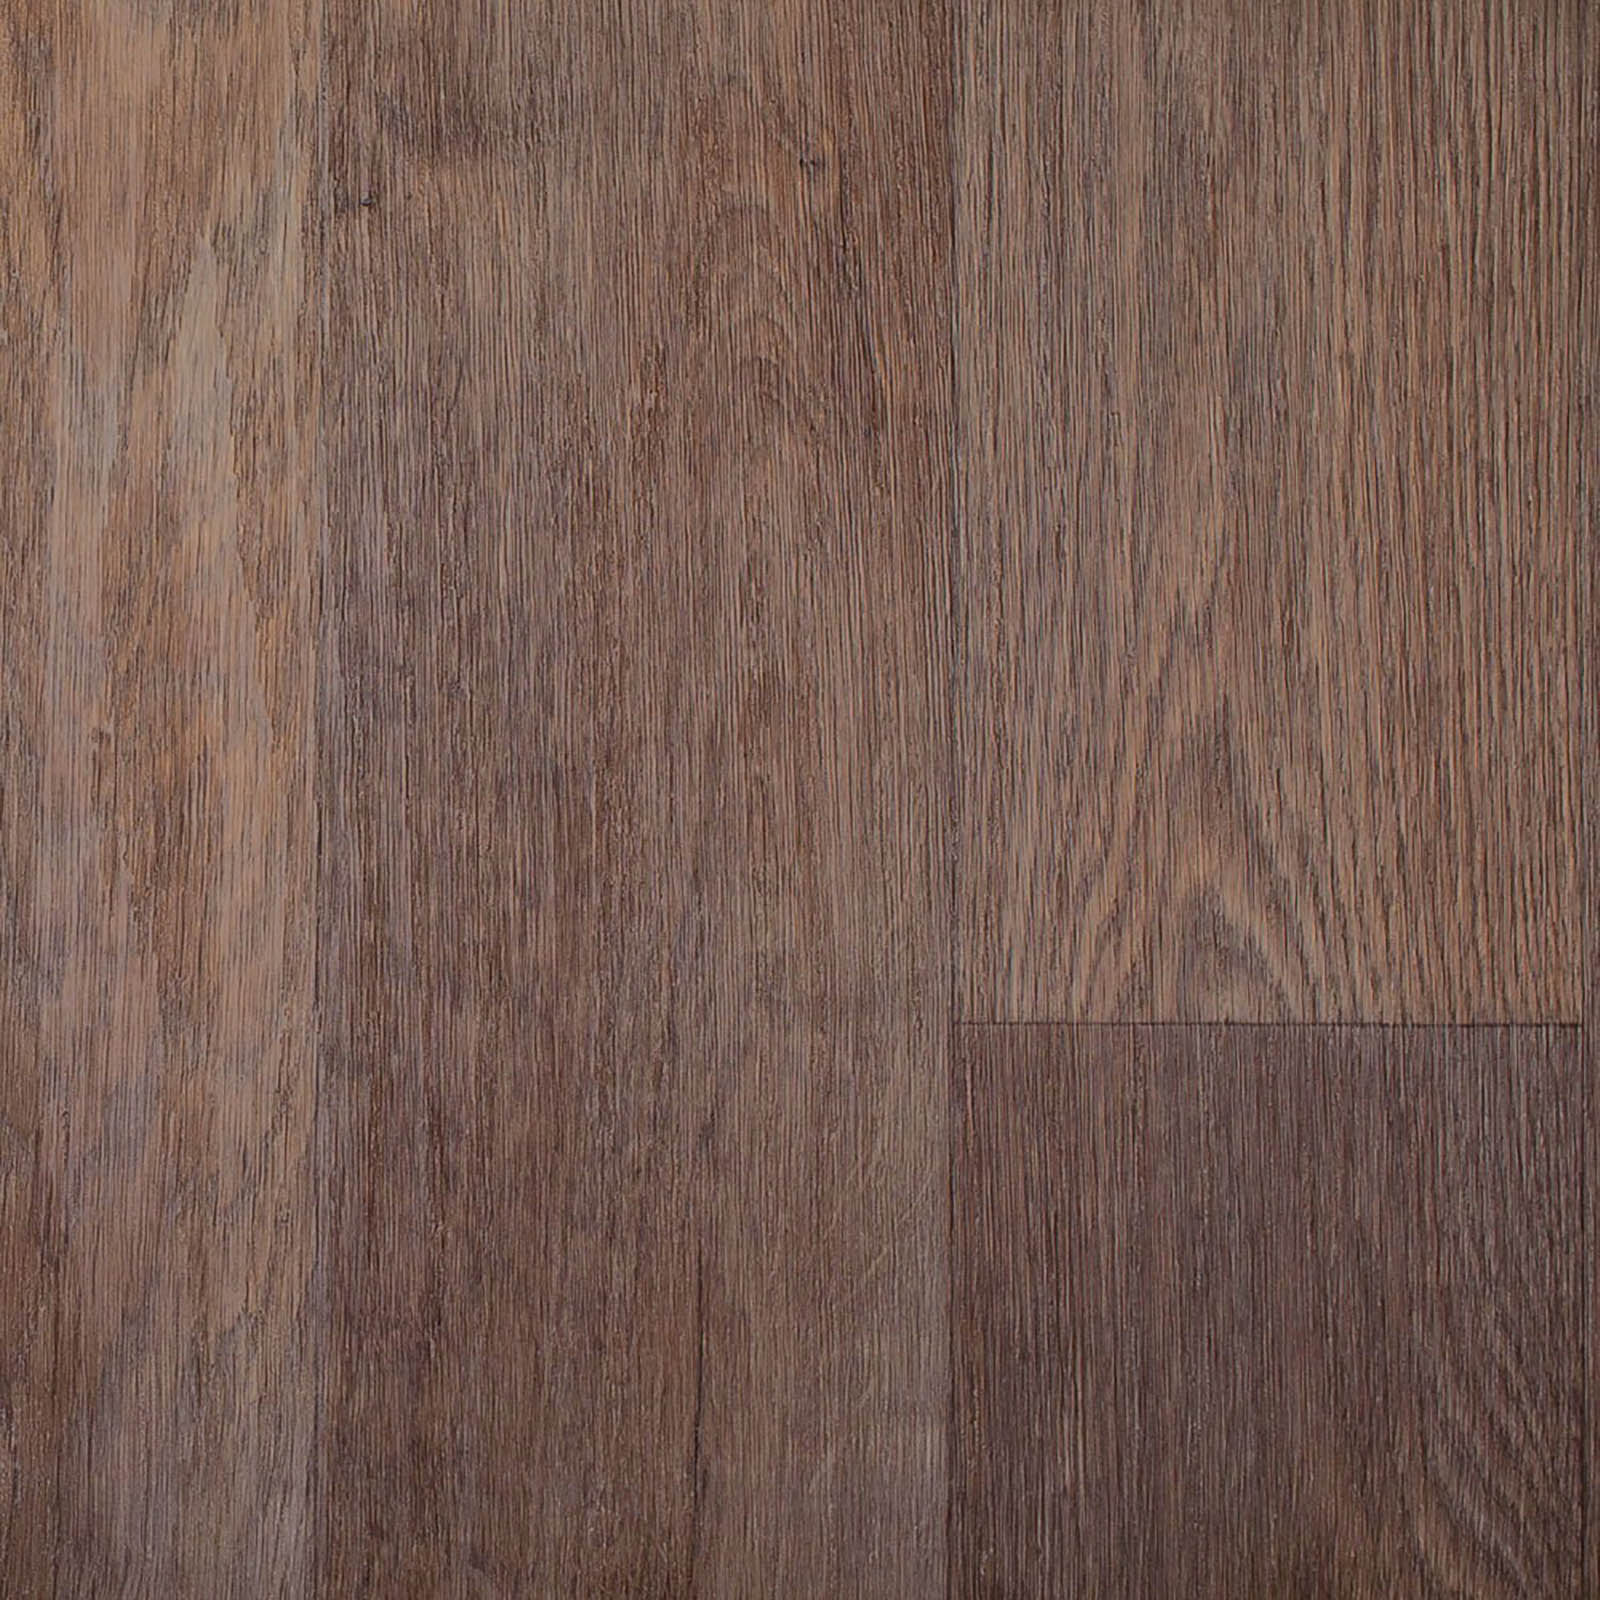 Grey Beige Oak Plank Primo Vinyl Flooring - Far